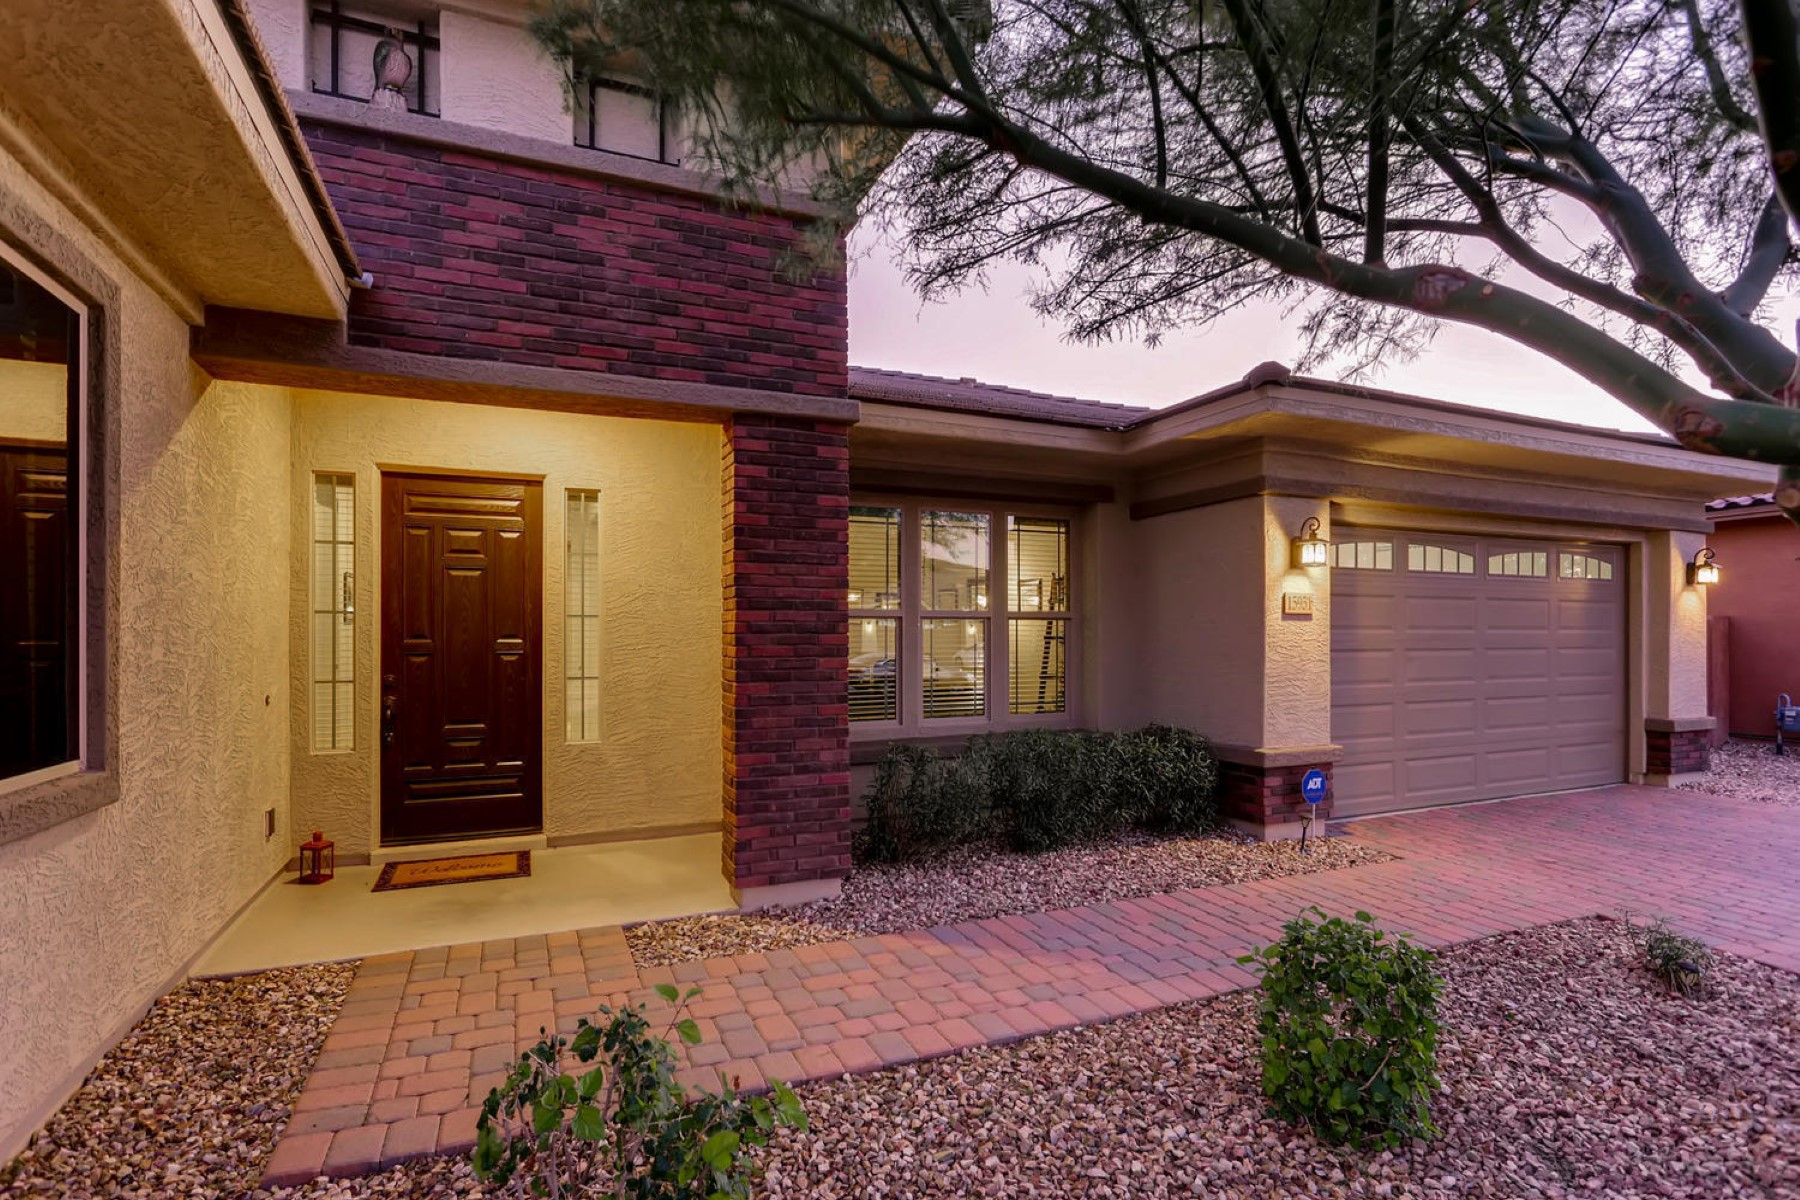 Single Family Homes for Sale at Beautiful Single-level Home 15951 W BONITOS DR Goodyear, Arizona 85395 United States